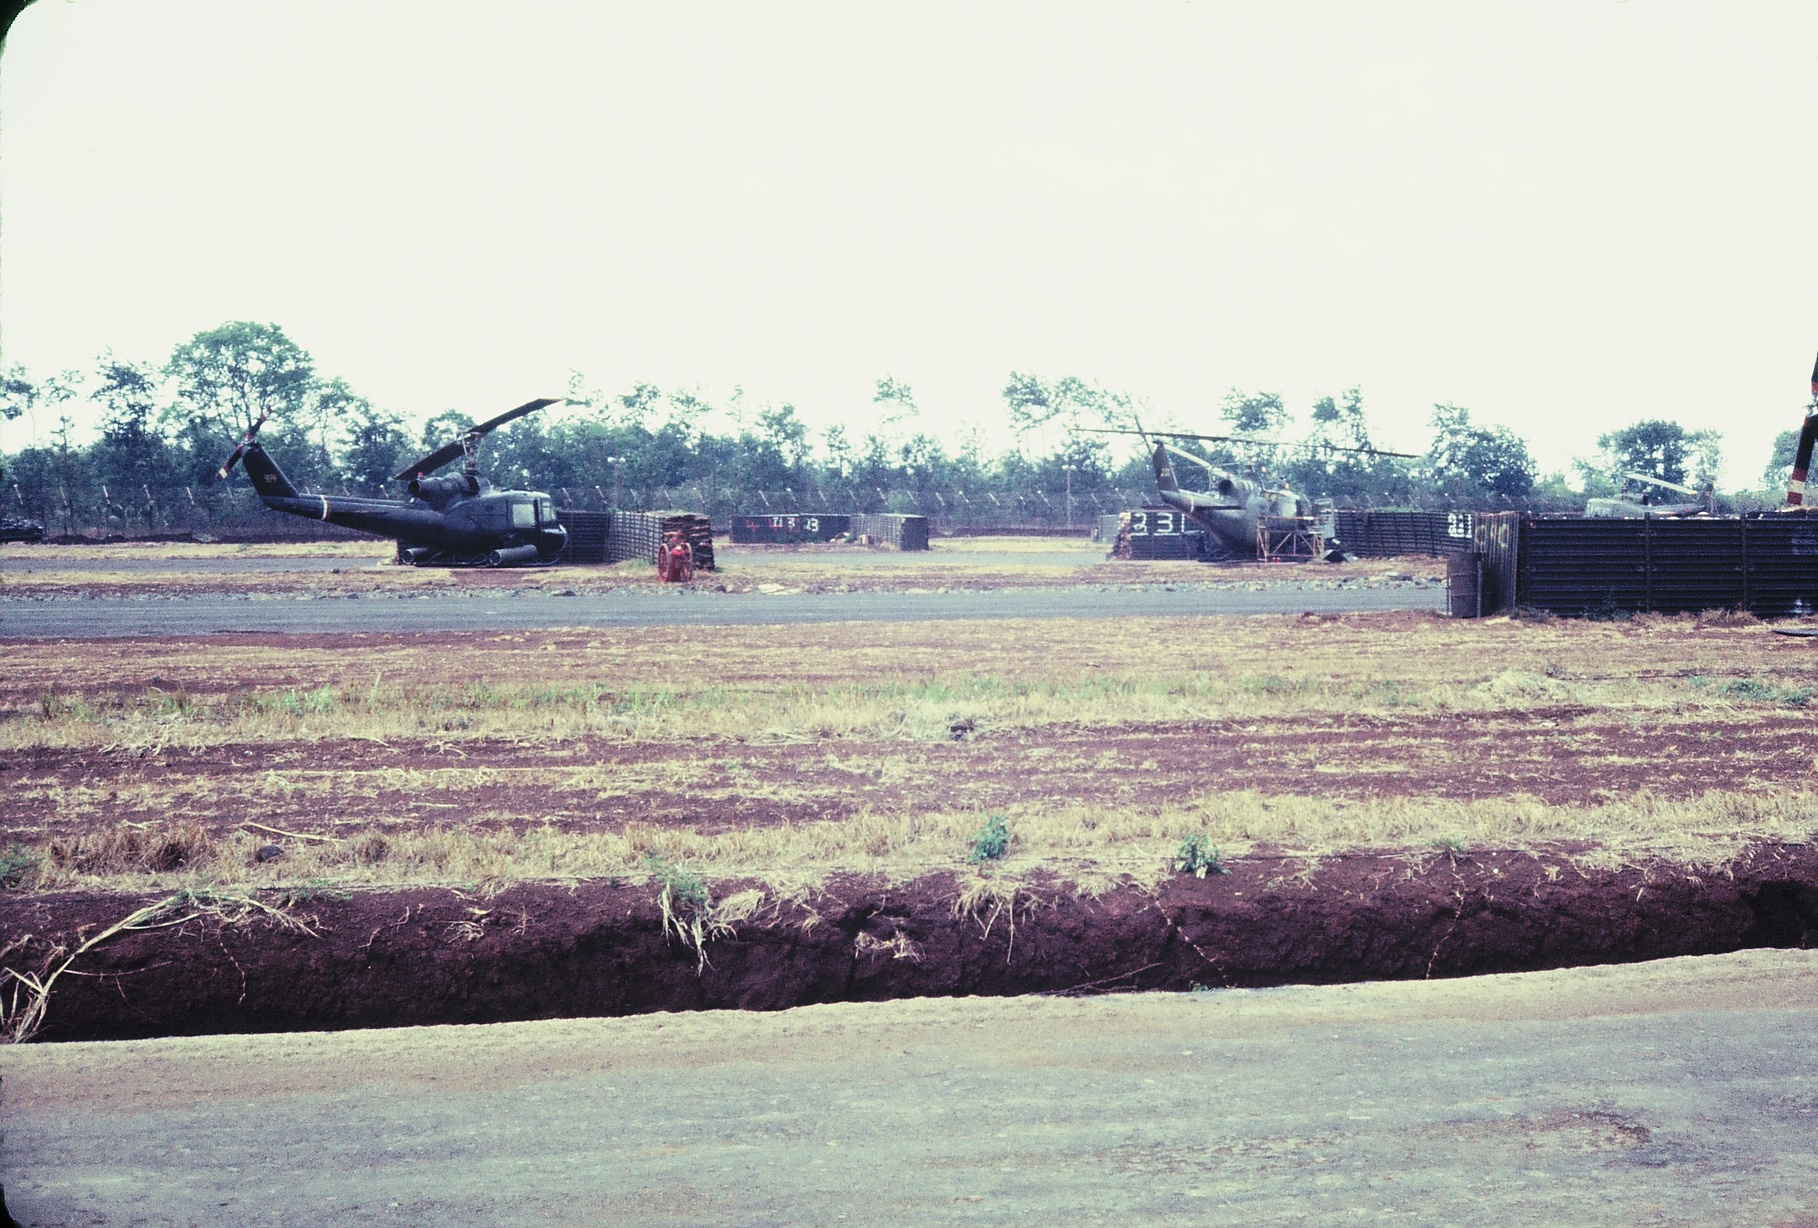 My Pictures-0021.jpg - Some of the gun ship belonging to the 155th assault helicopter company at BMT city strip.